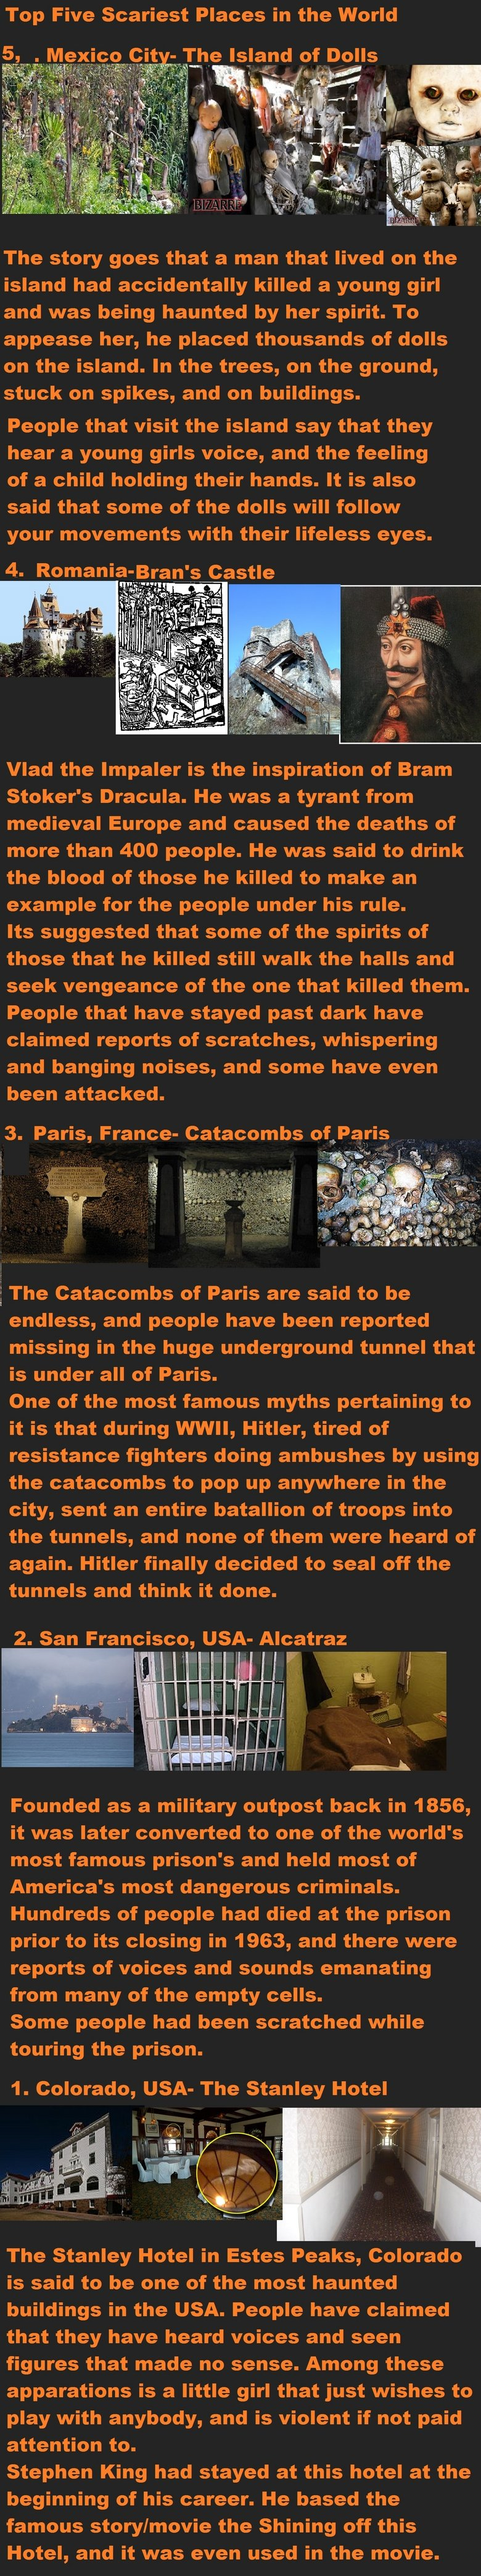 Top 5 Scariest Places in the World. Please note that these are my opinions. You are free to disagree.<br /> Thumb comment and favorite. I might do these f